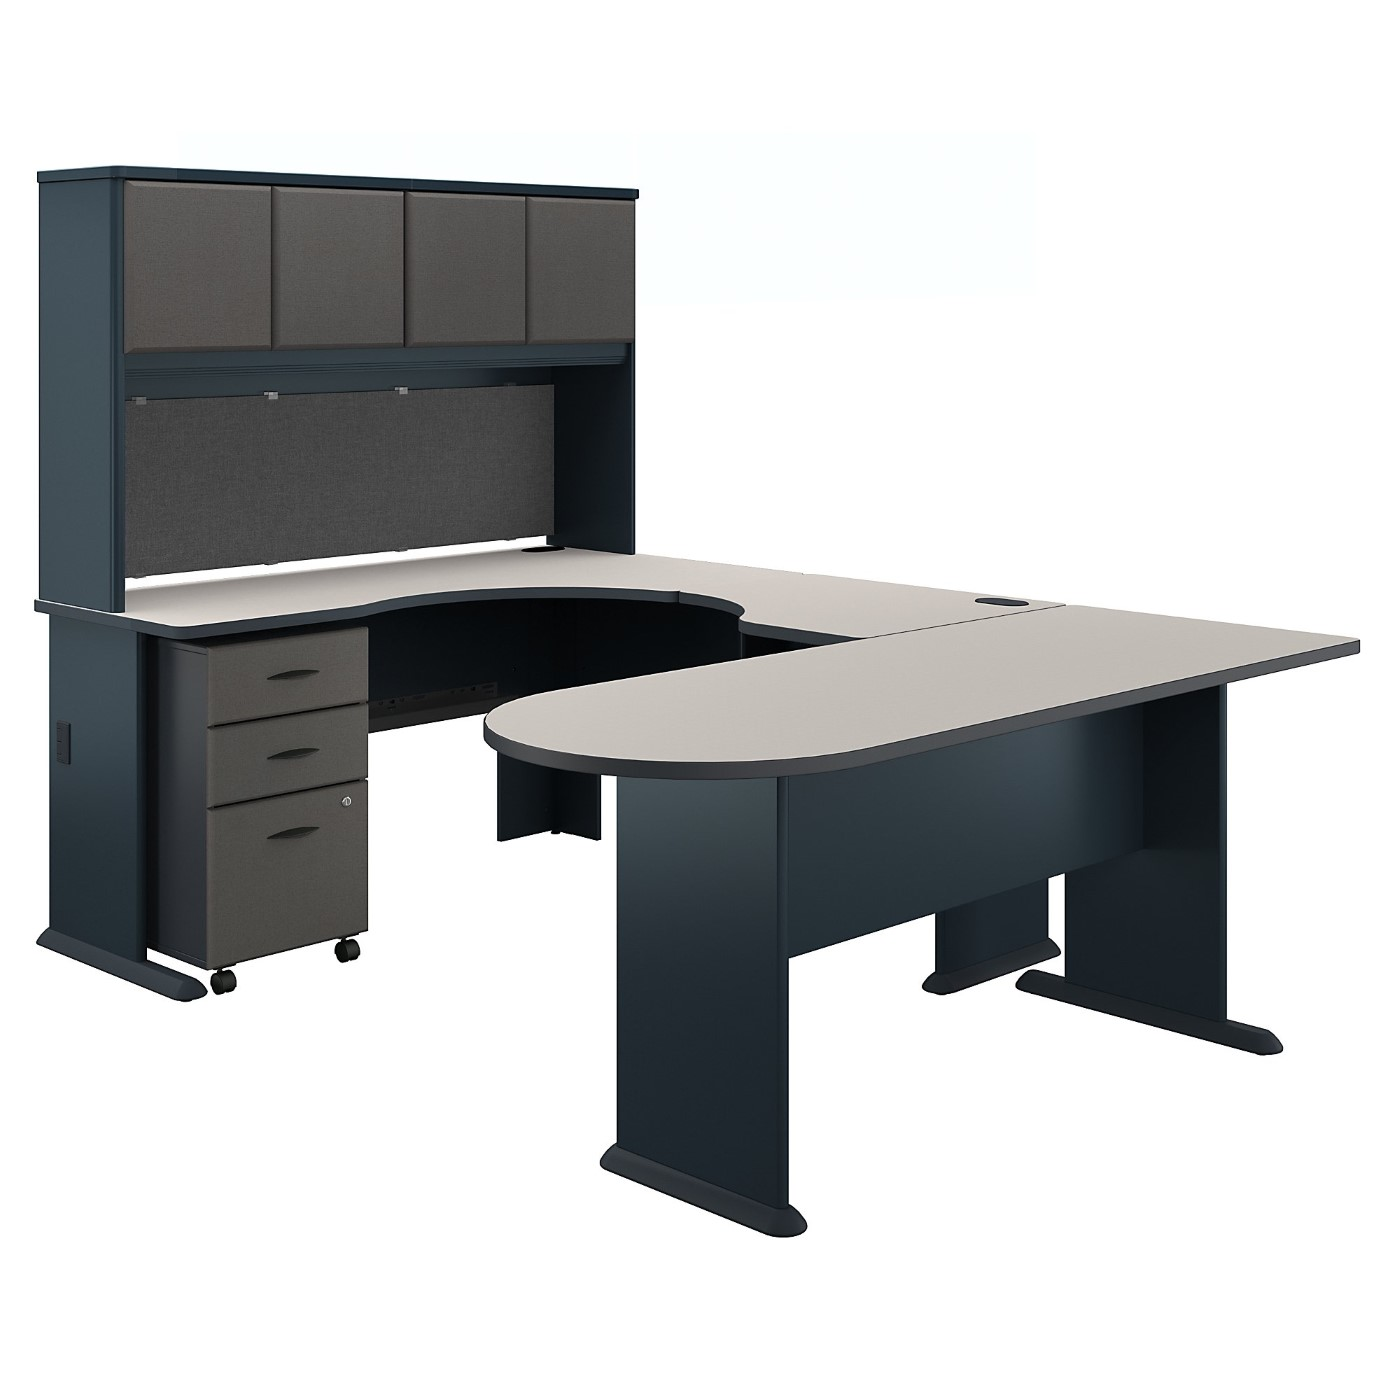 BUSH BUSINESS FURNITURE SERIES A U SHAPED CORNER DESK WITH HUTCH AND MOBILE FILE CABINET. FREE SHIPPING